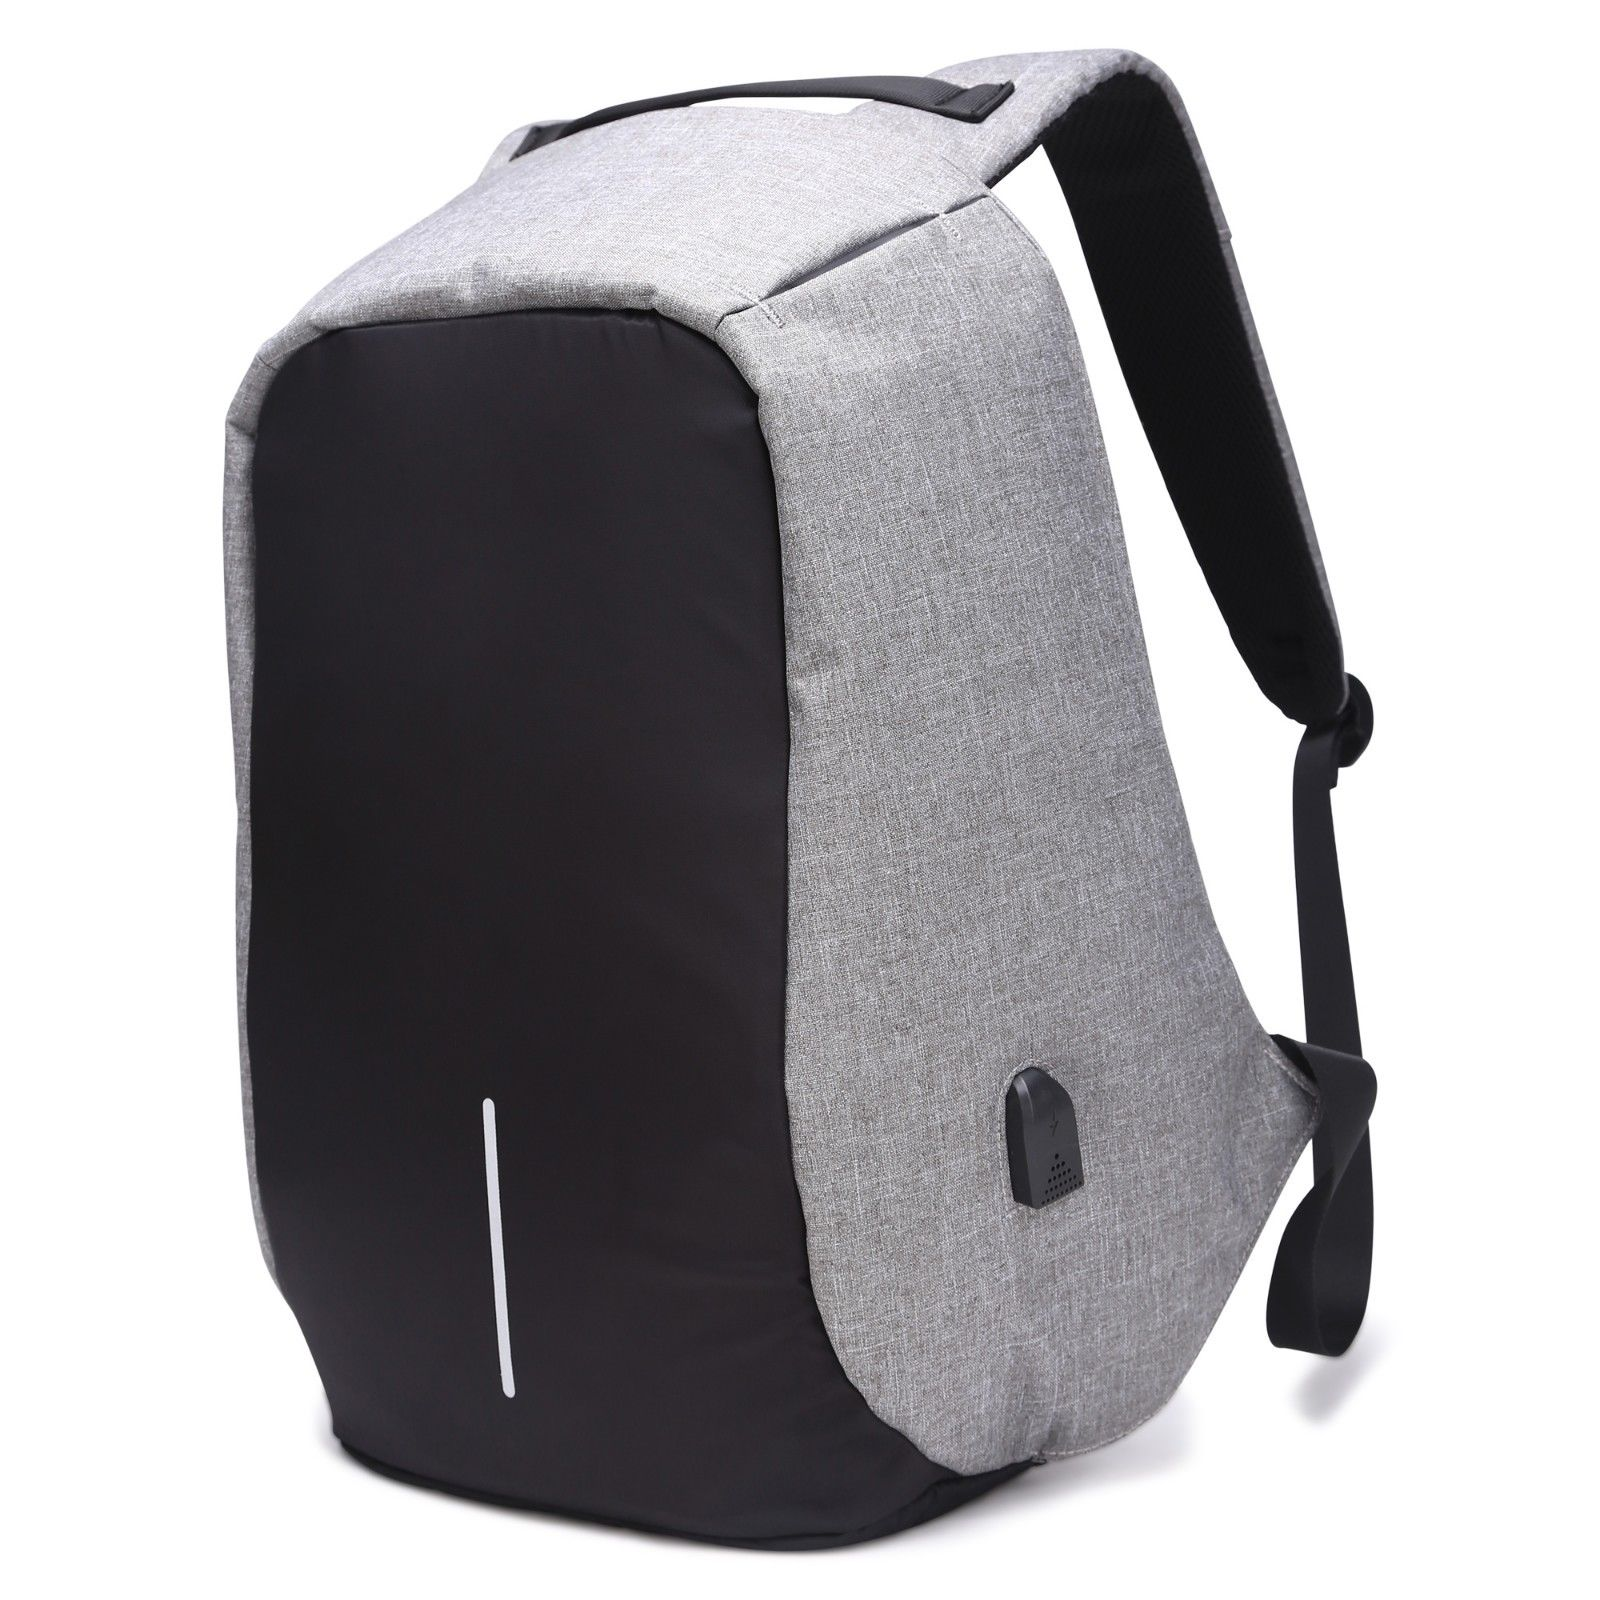 0f0579983811 NEW Anti Theft Backpack Waterproof bag School Travel Laptop Bags USB  Charging